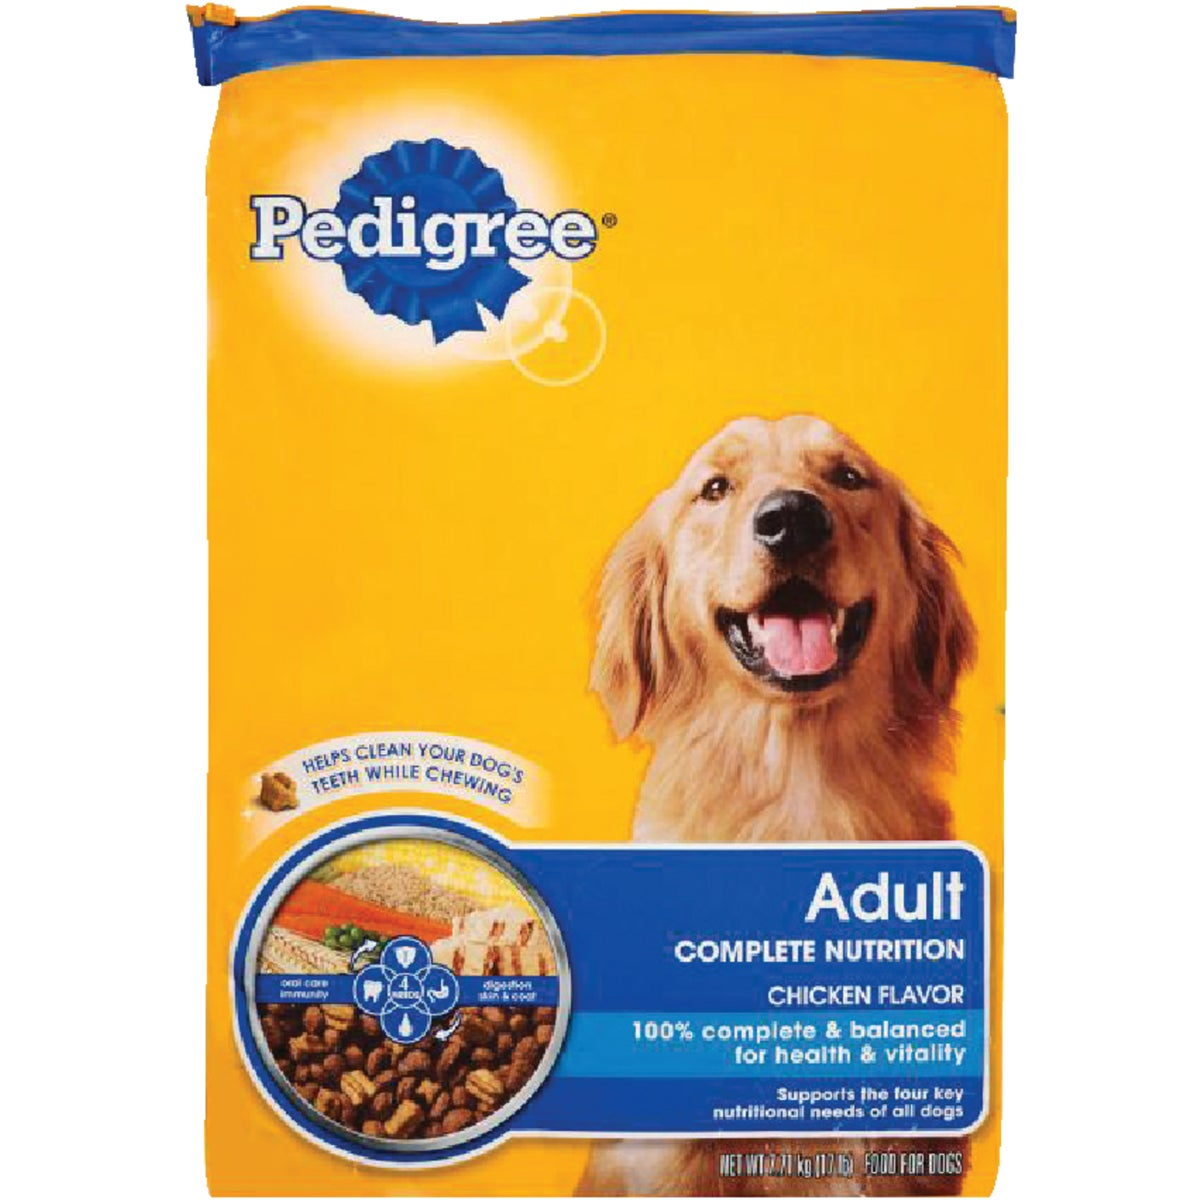 17LB ADLT CMPLT DOG FOOD - 10097565 by Mars Pedigree